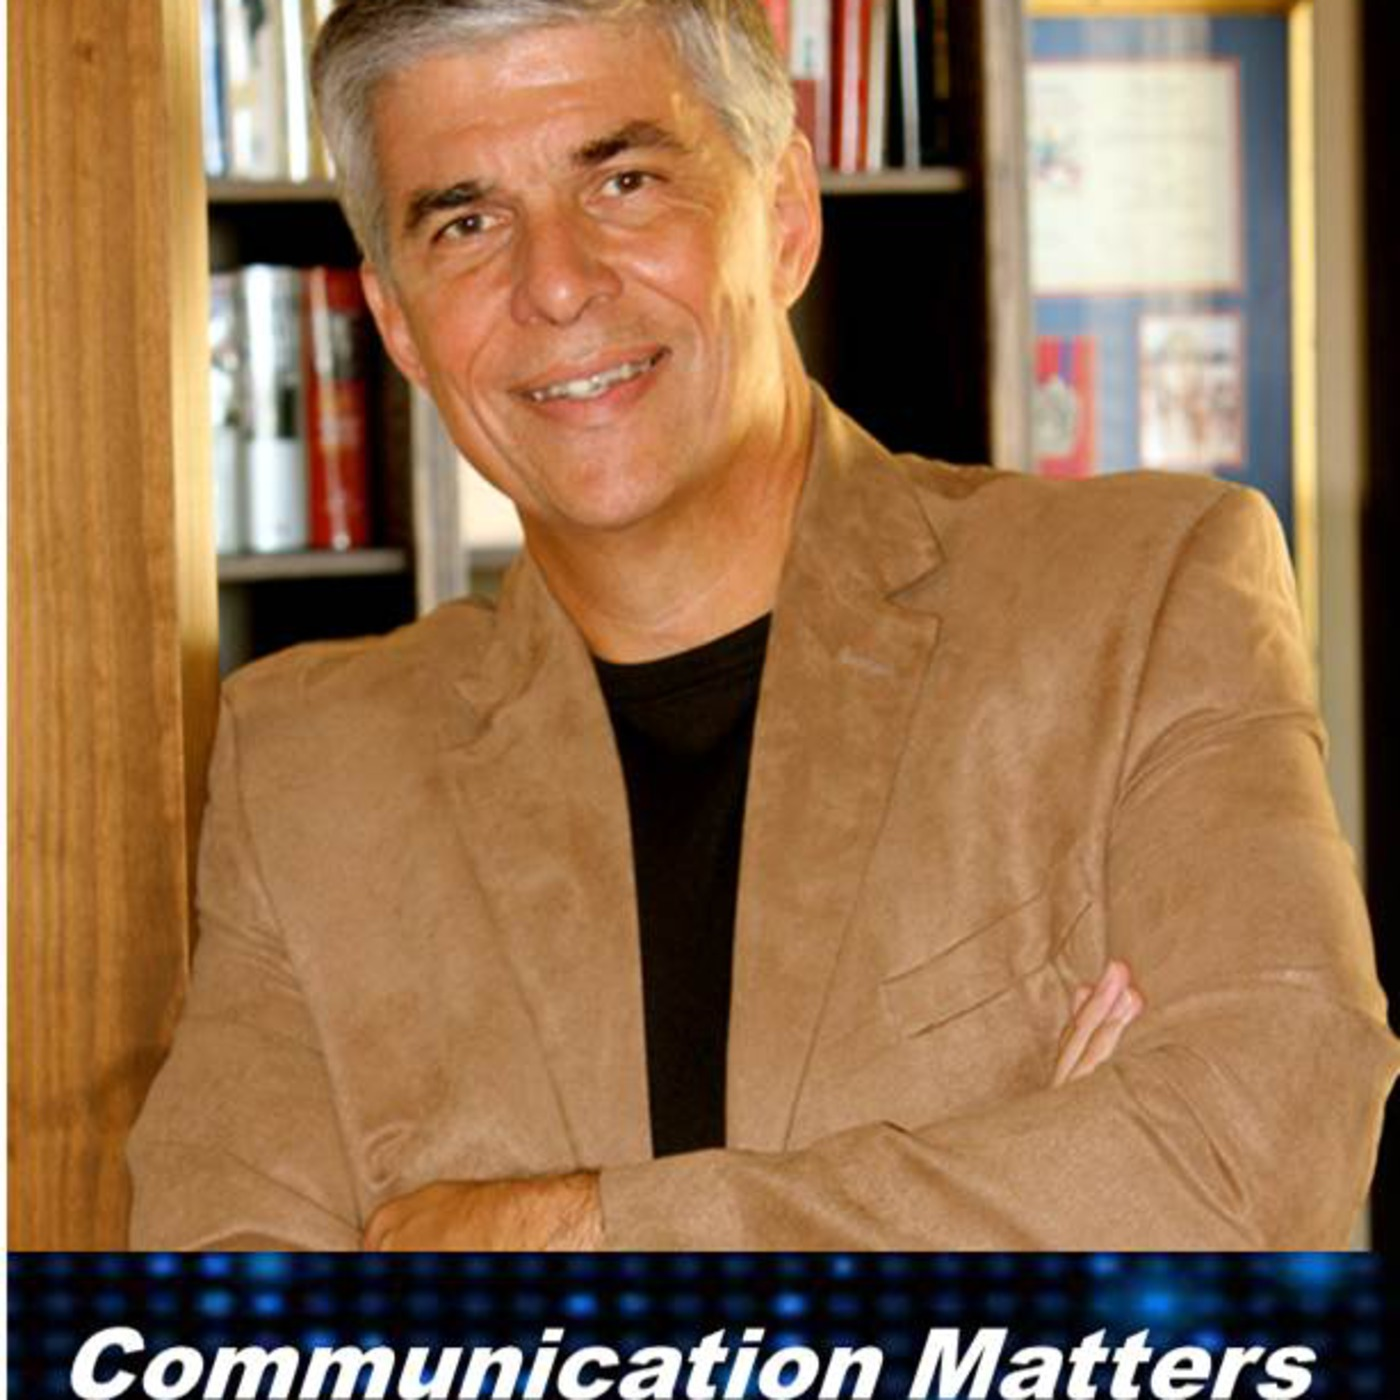 Communication Matters With Richard McKeown